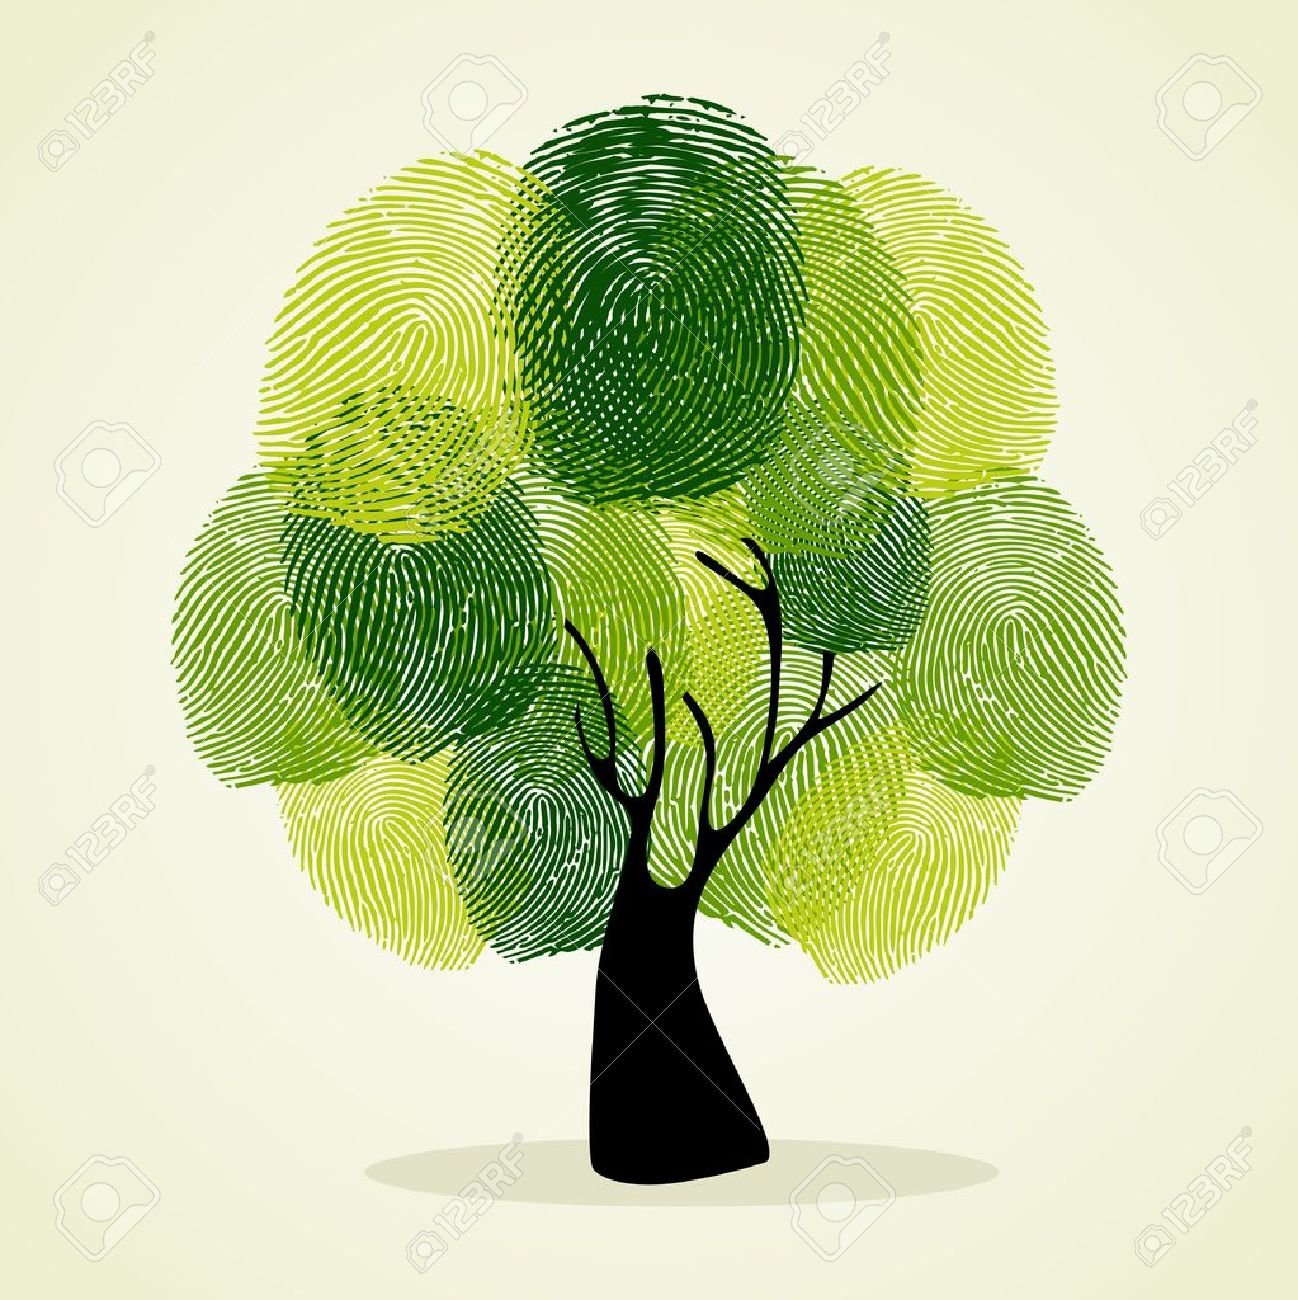 Go Green identity tree finger prints illustration. file layered for easy manipulation and custom coloring. - 20633229